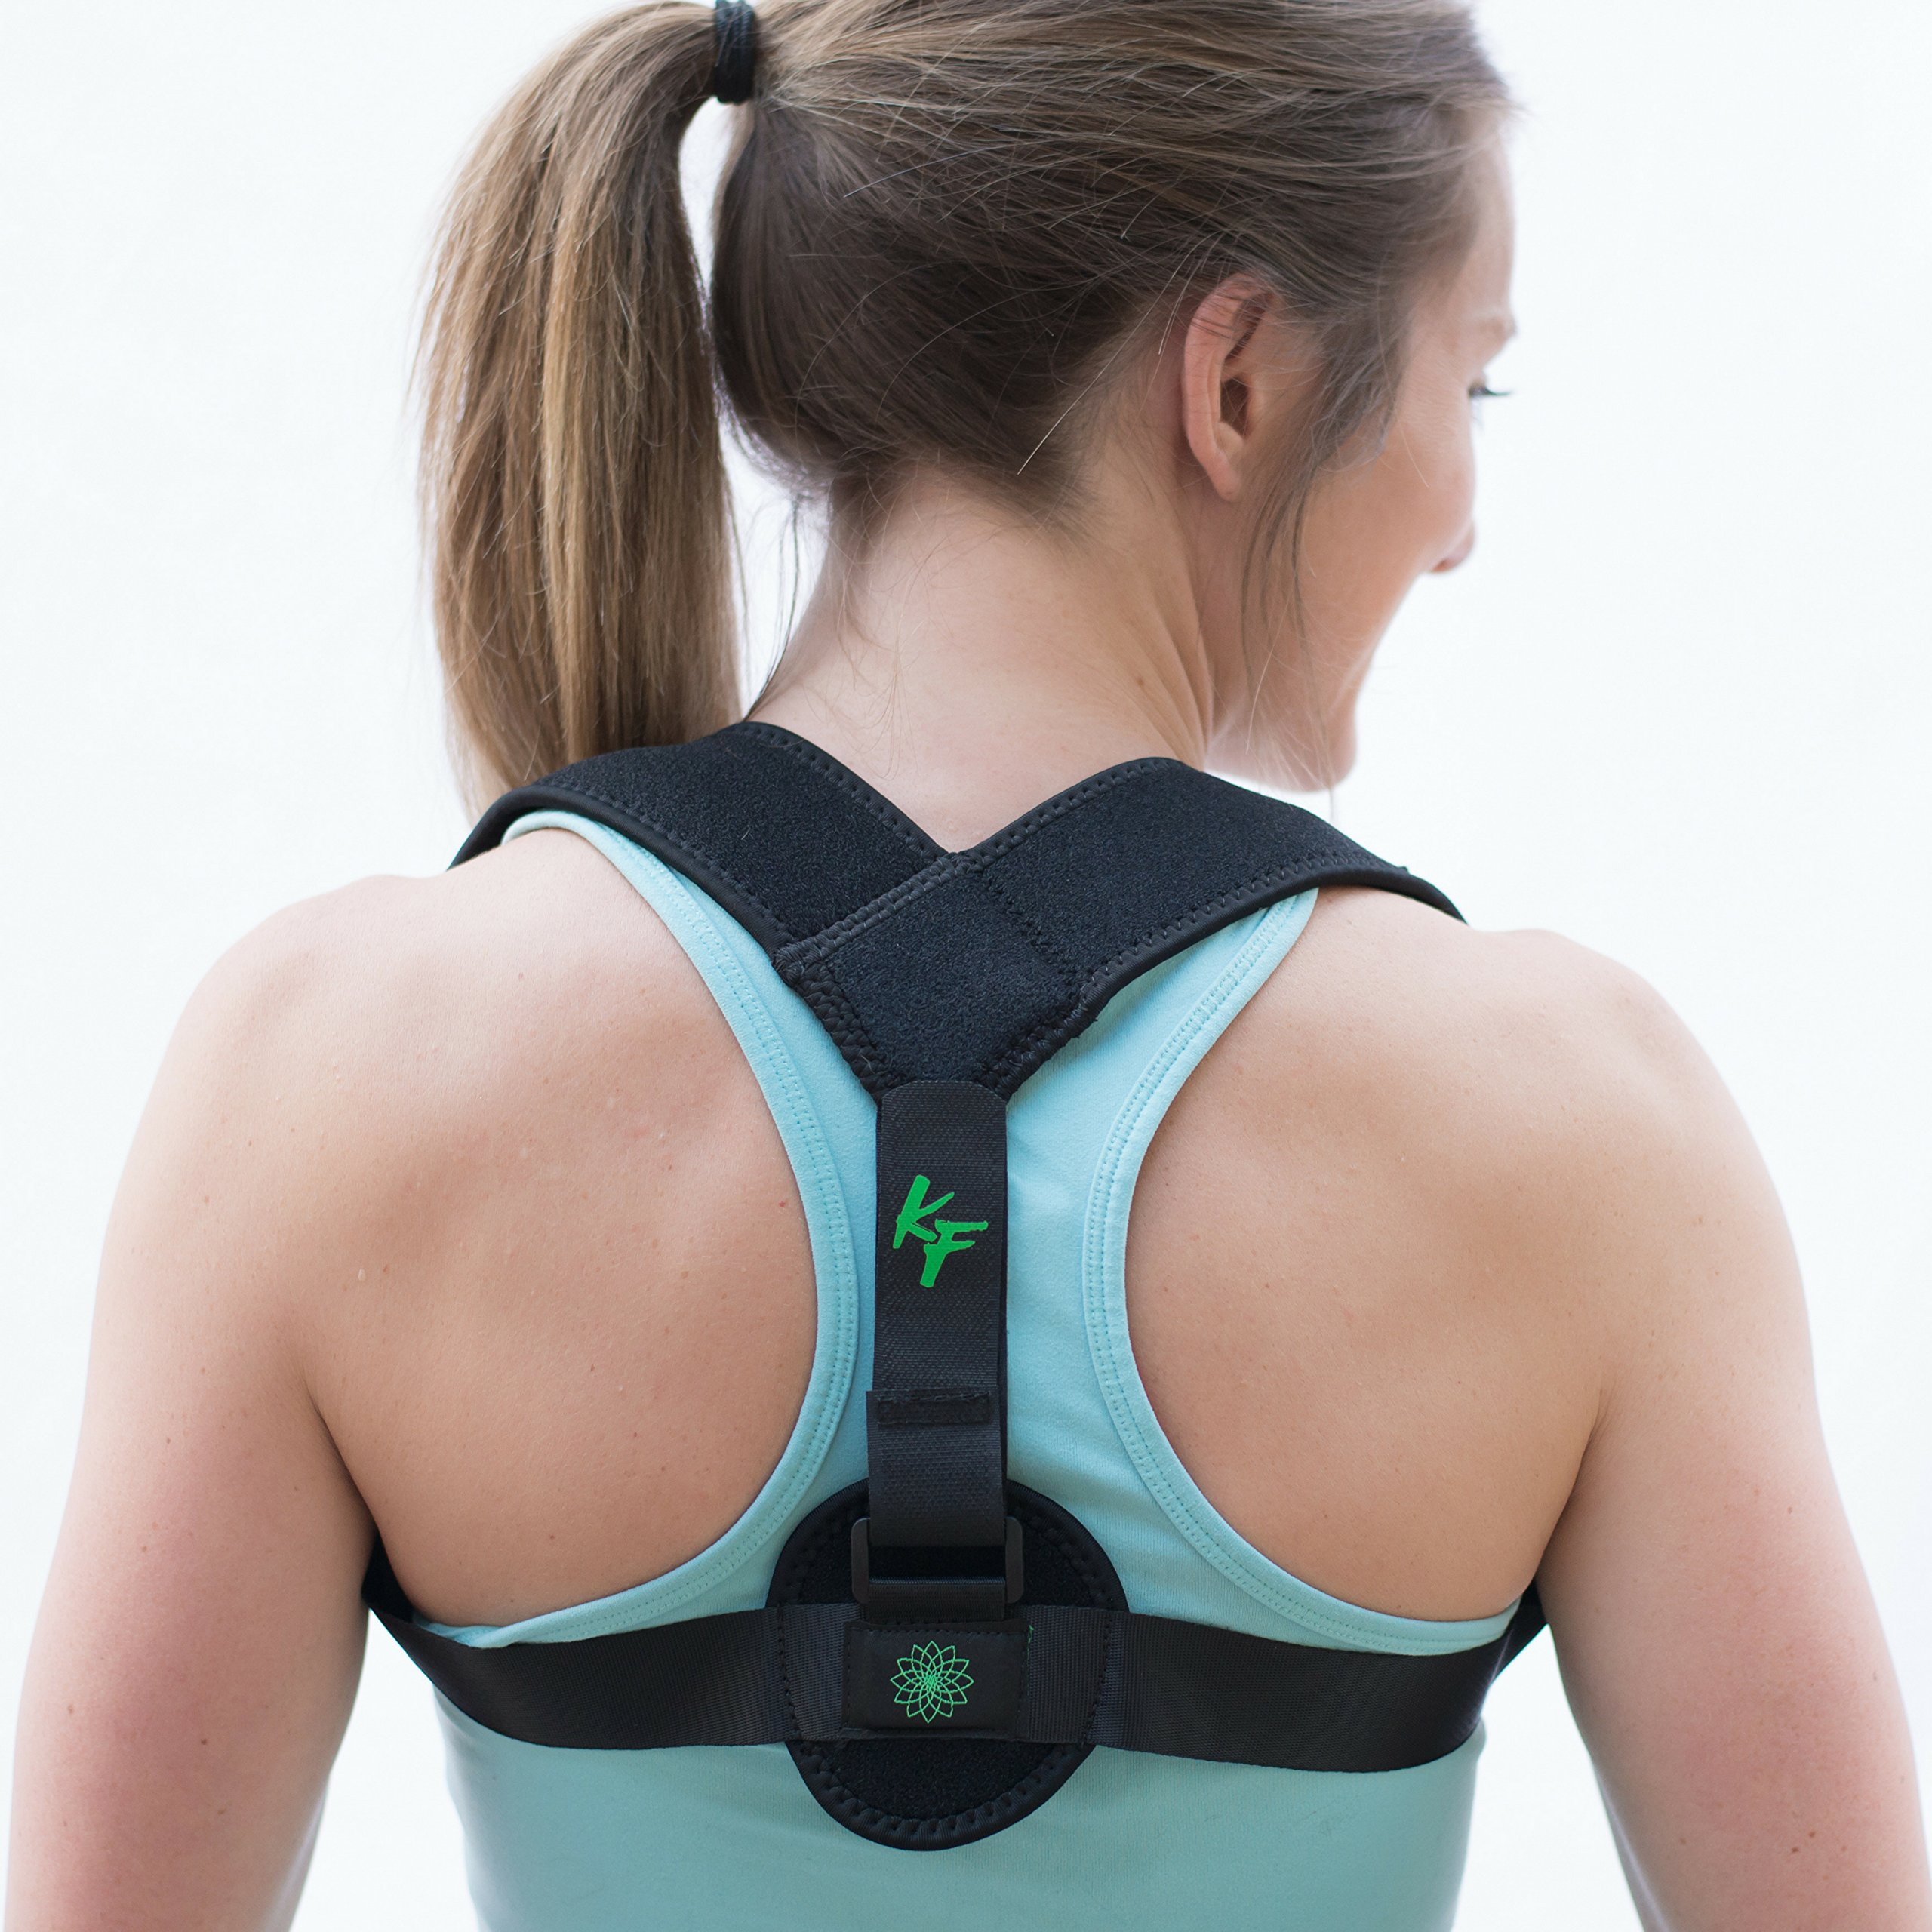 Khora Fitness Posture Corrector - Adjustable Clavicle Brace Support for Men and Women - Breathable and Comfortable Under Clothes - Orthopedic and Therapeutic Shoulder/Back Correction and Straightening